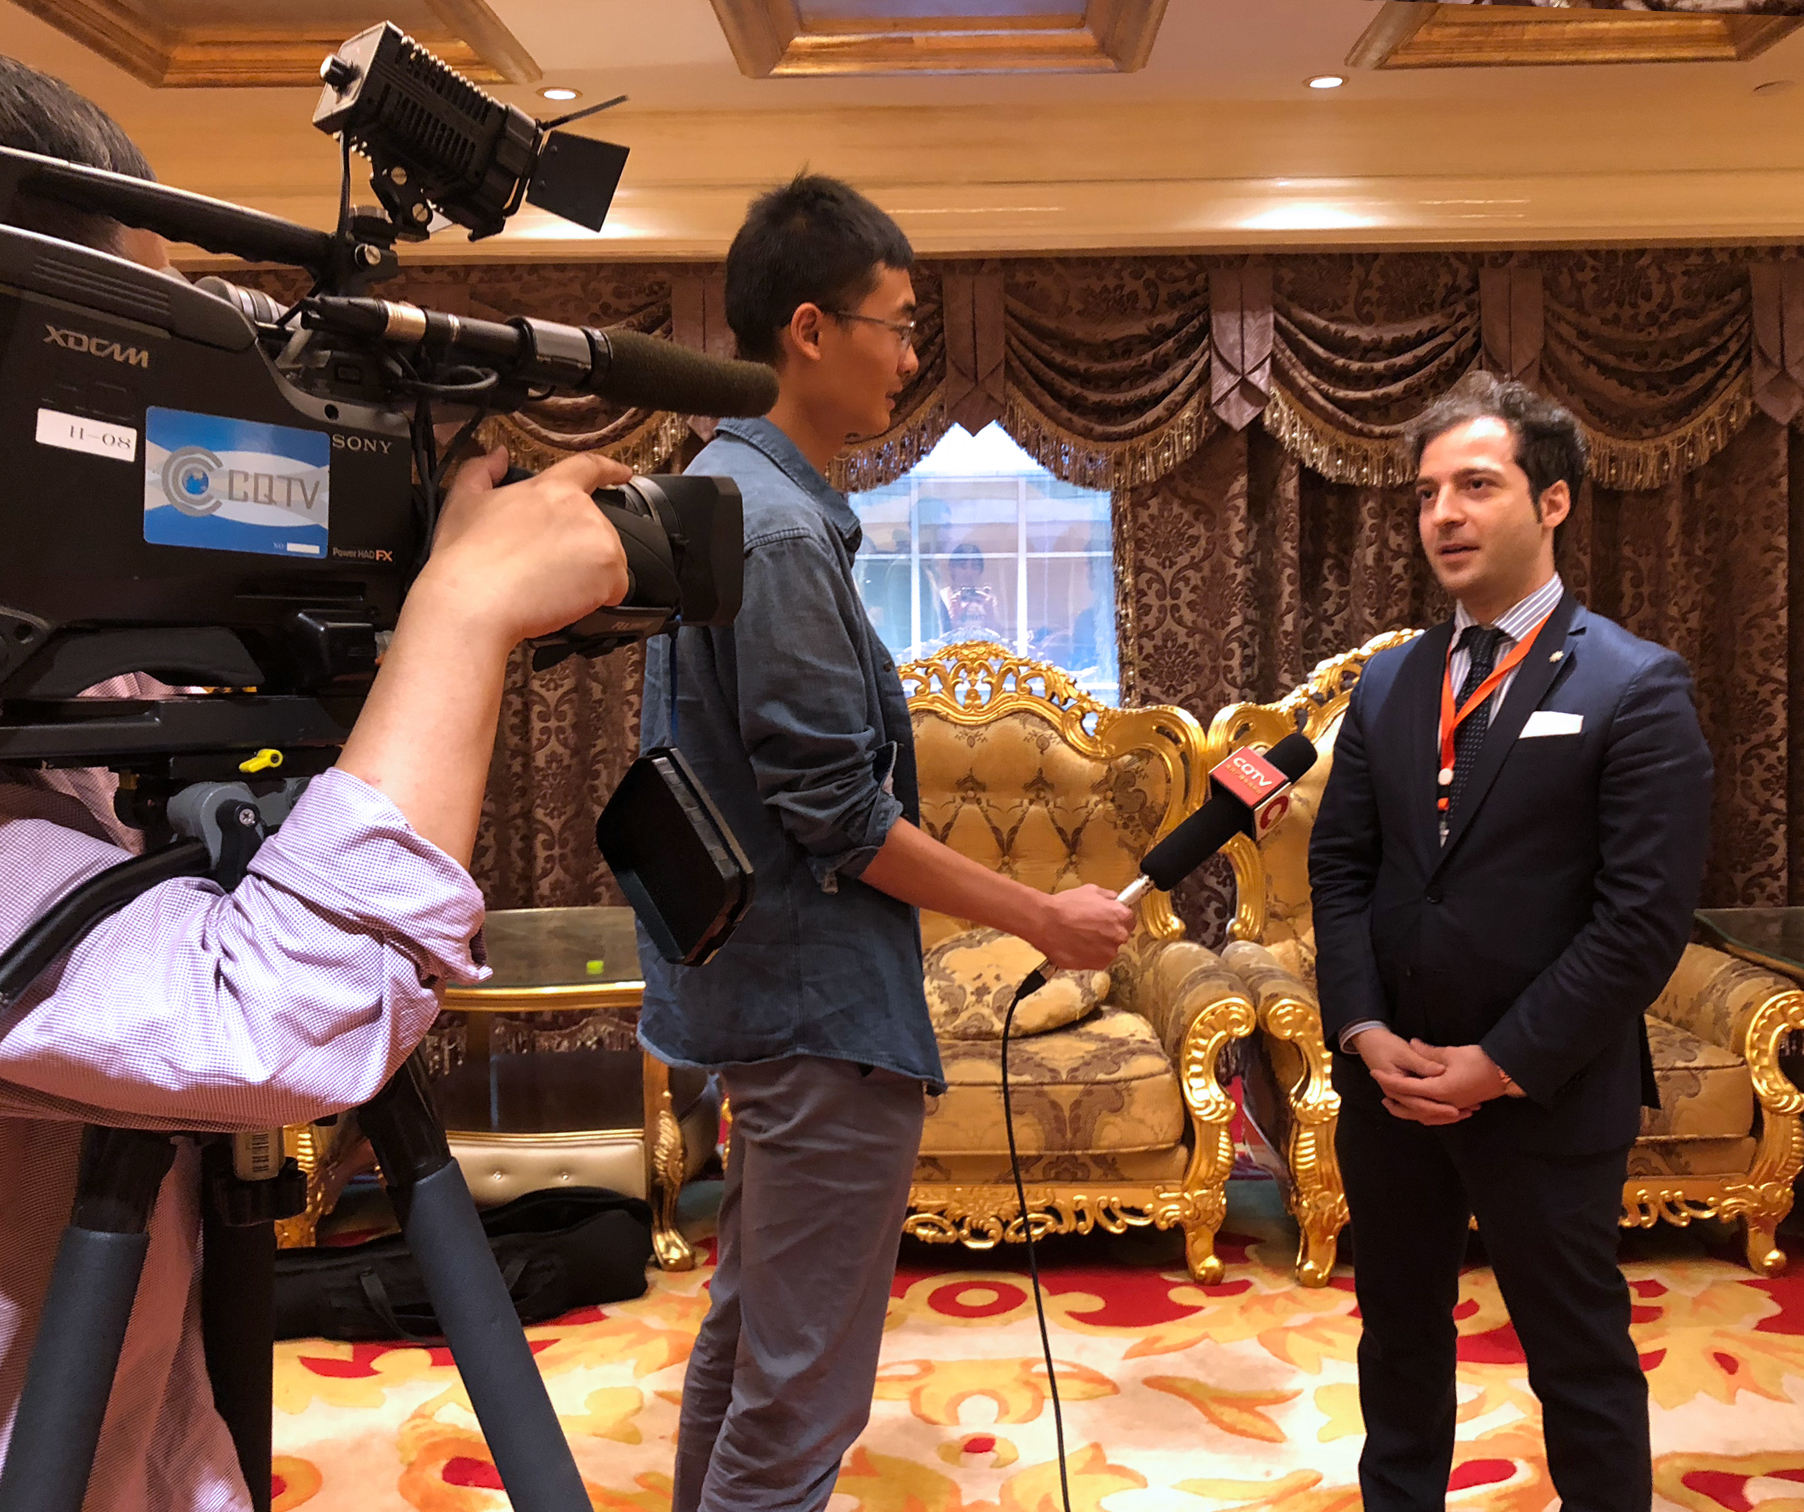 DeZhuang International Co-Founder Speaks at 1st International Hotpot Food Industry Summit